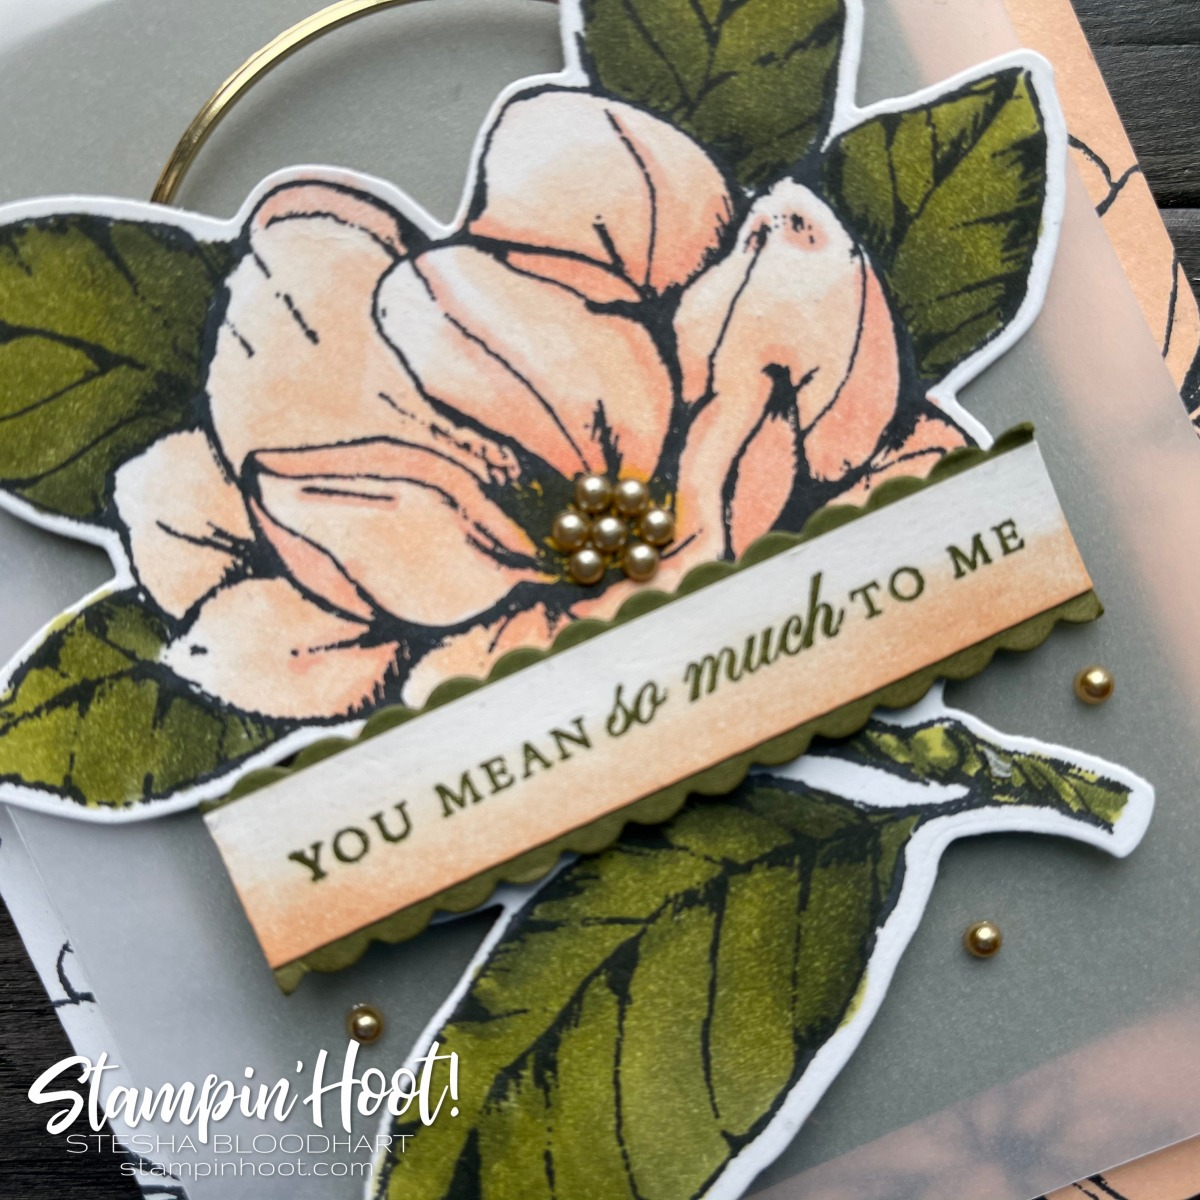 #tgifc298 Good Morning Magnolia from Stampin' Up! Love and Friendship Card by Stesha Bloodhart, Stampin' Hoot!